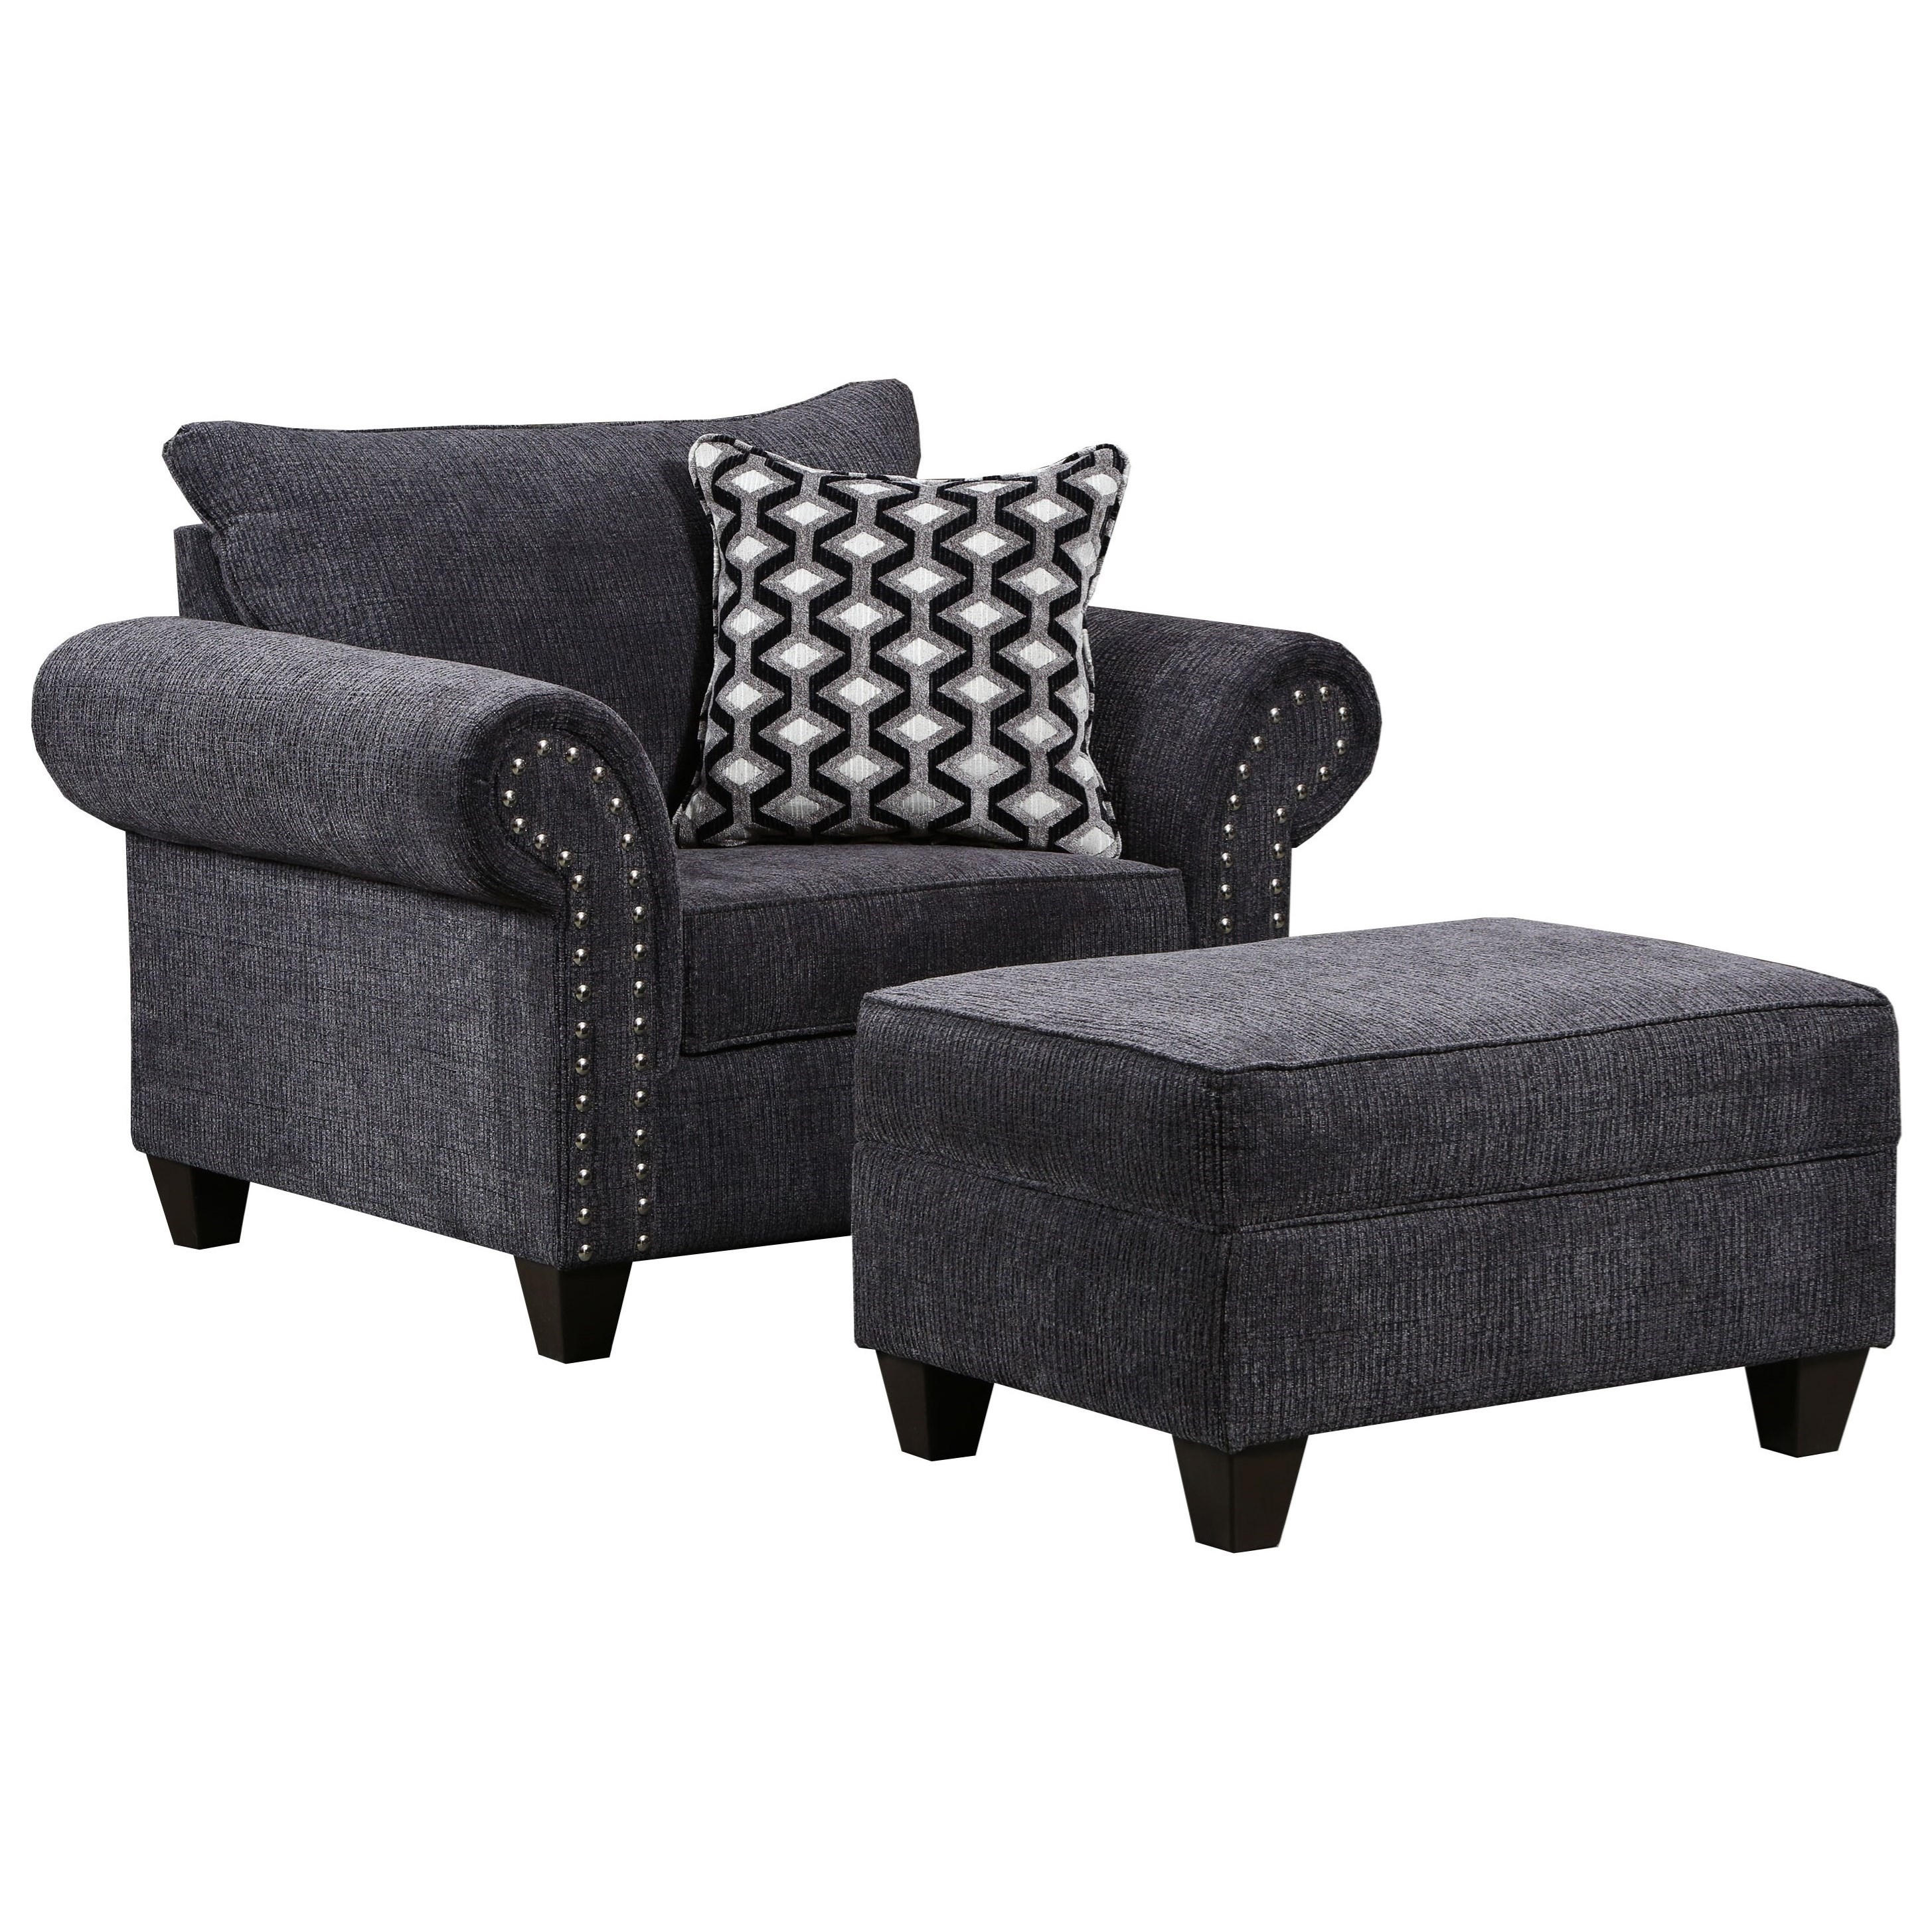 8036 Chair and Ottoman by United Furniture Industries at Dream Home Interiors